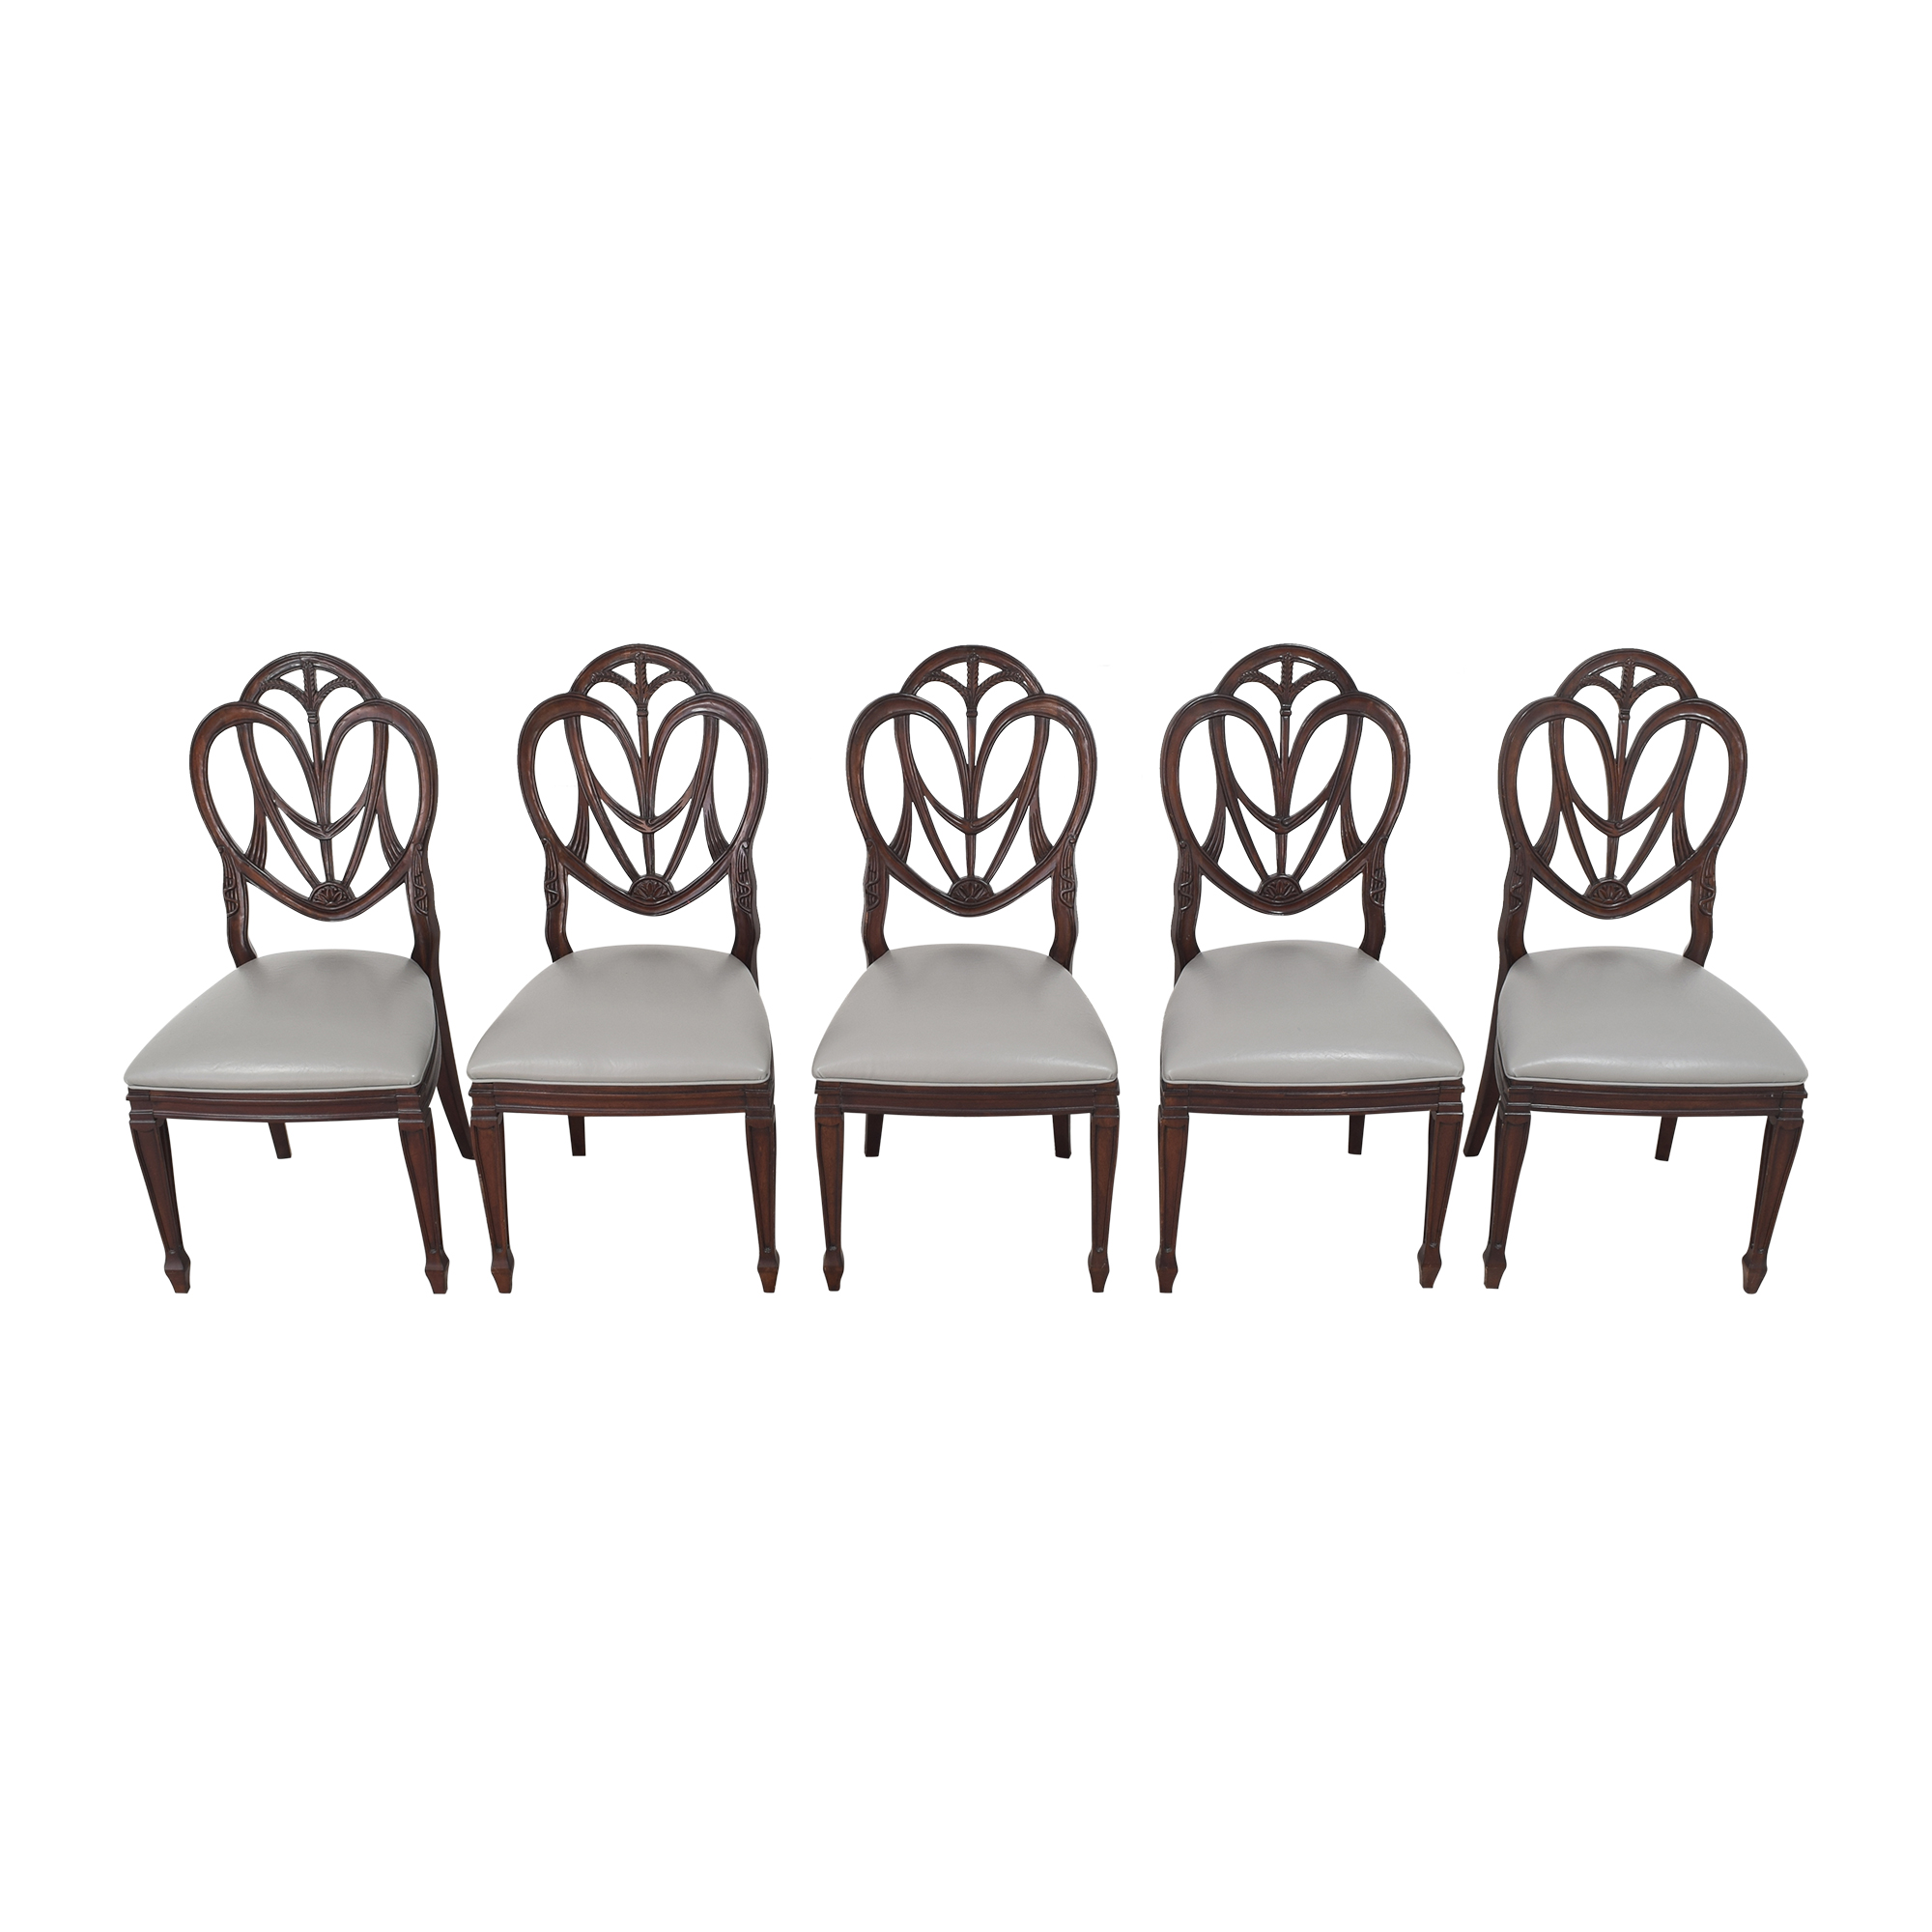 Drexel Heritage Drexel Heritage British Accents Dining Chairs Dining Chairs